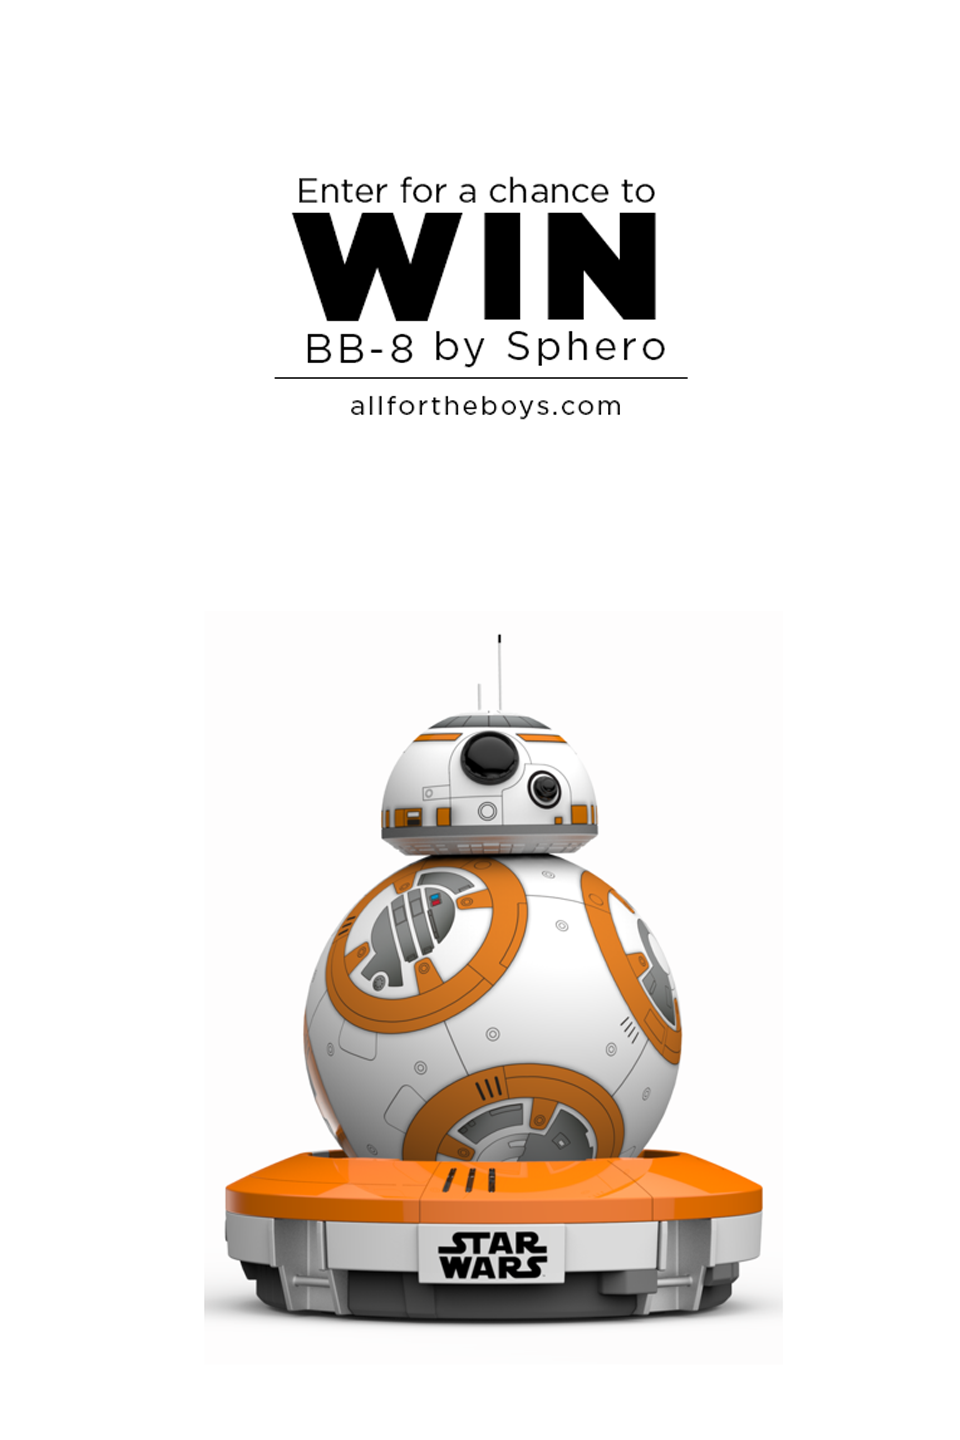 Enter for a chance to win a BB-8 by Sphero at allfortheboys.com